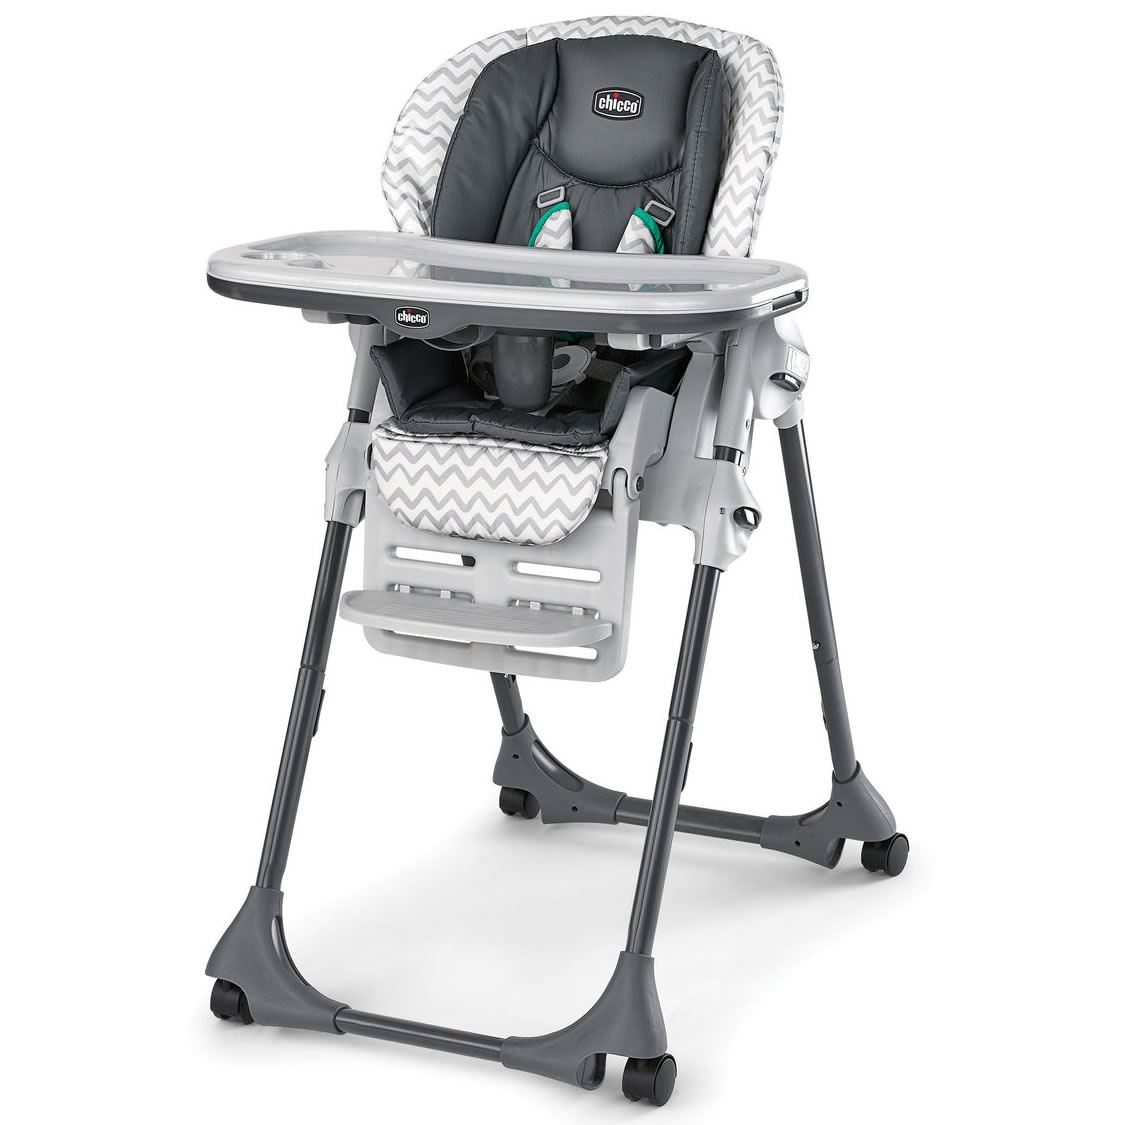 albee baby high chair crate and barrel rocking slipcover chicco polly double pad highchair empire